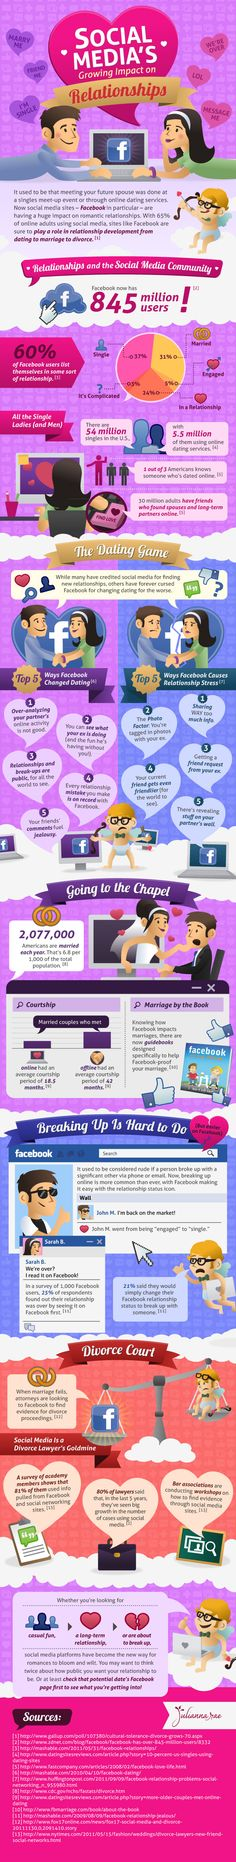 @KlausBillinger recognized the matchmaking trend really early ;-)). The average courtship for couples who got married after meeting online is said to be 18.5 months v. 42 months for people who met IRL. And you, @ideafinder~MiSha.at?